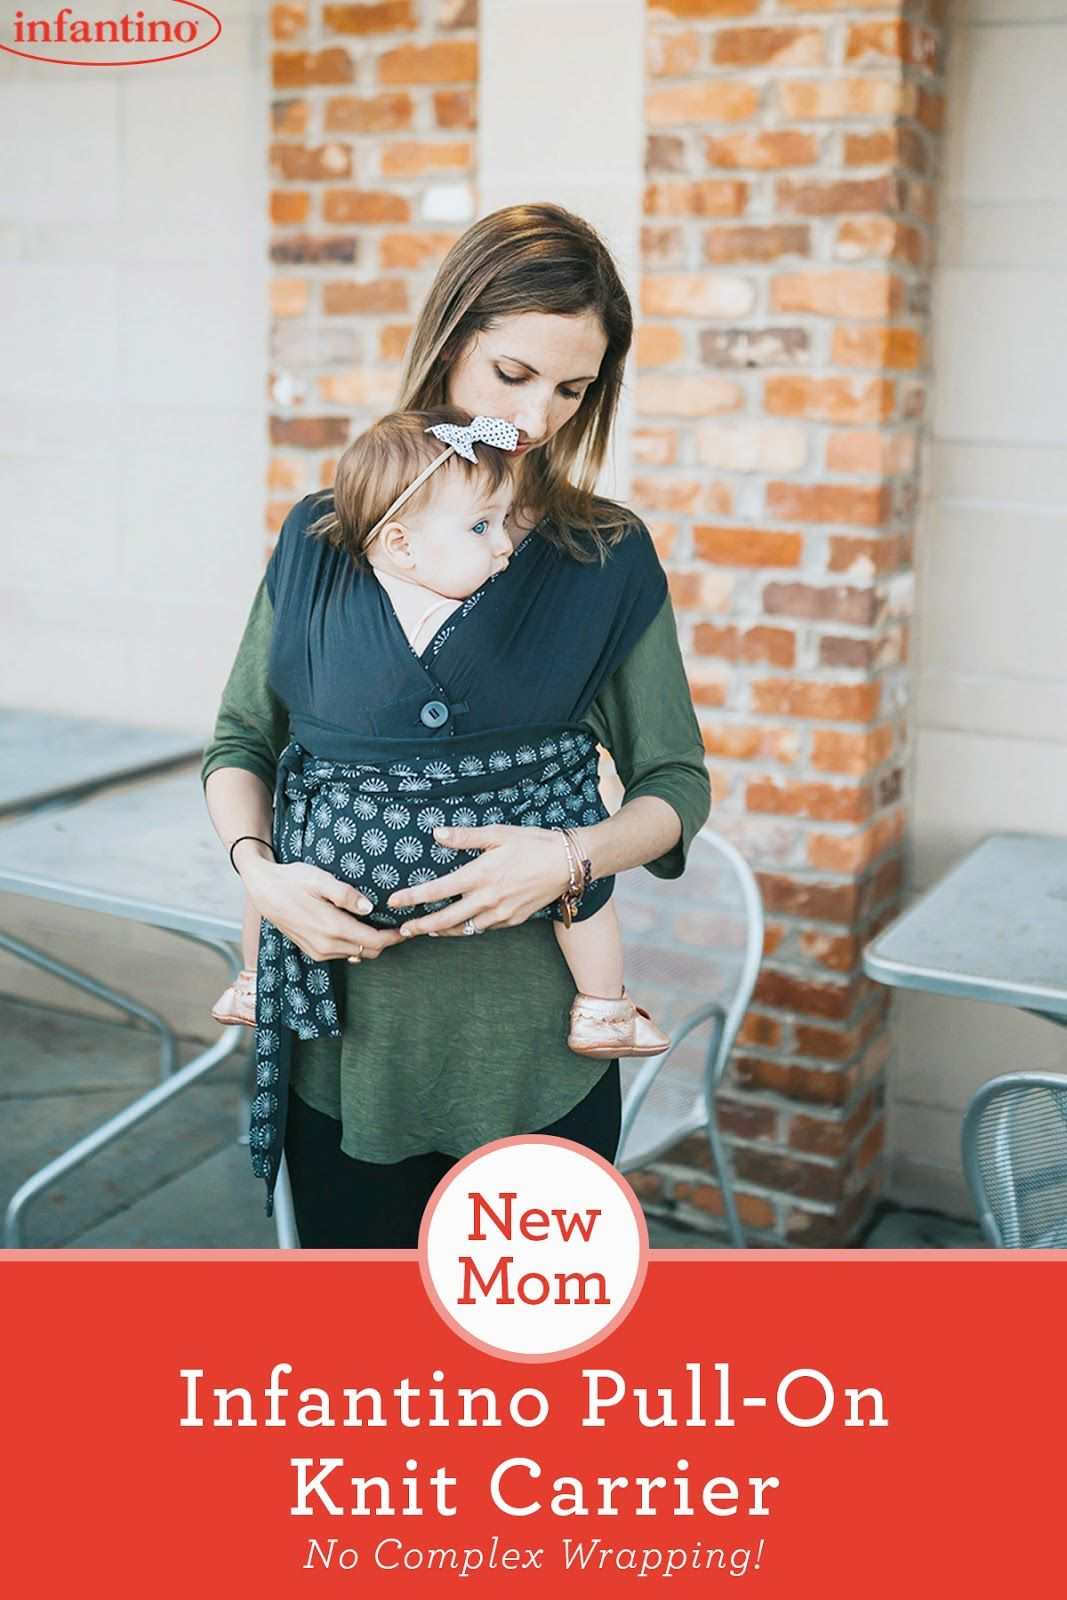 592385104b3 The perfect carrier for new moms  Infantino s Together Pull-On Knit Carrier.  The comfort of a wrap without any complex wrapping. This is a must-have  product ...